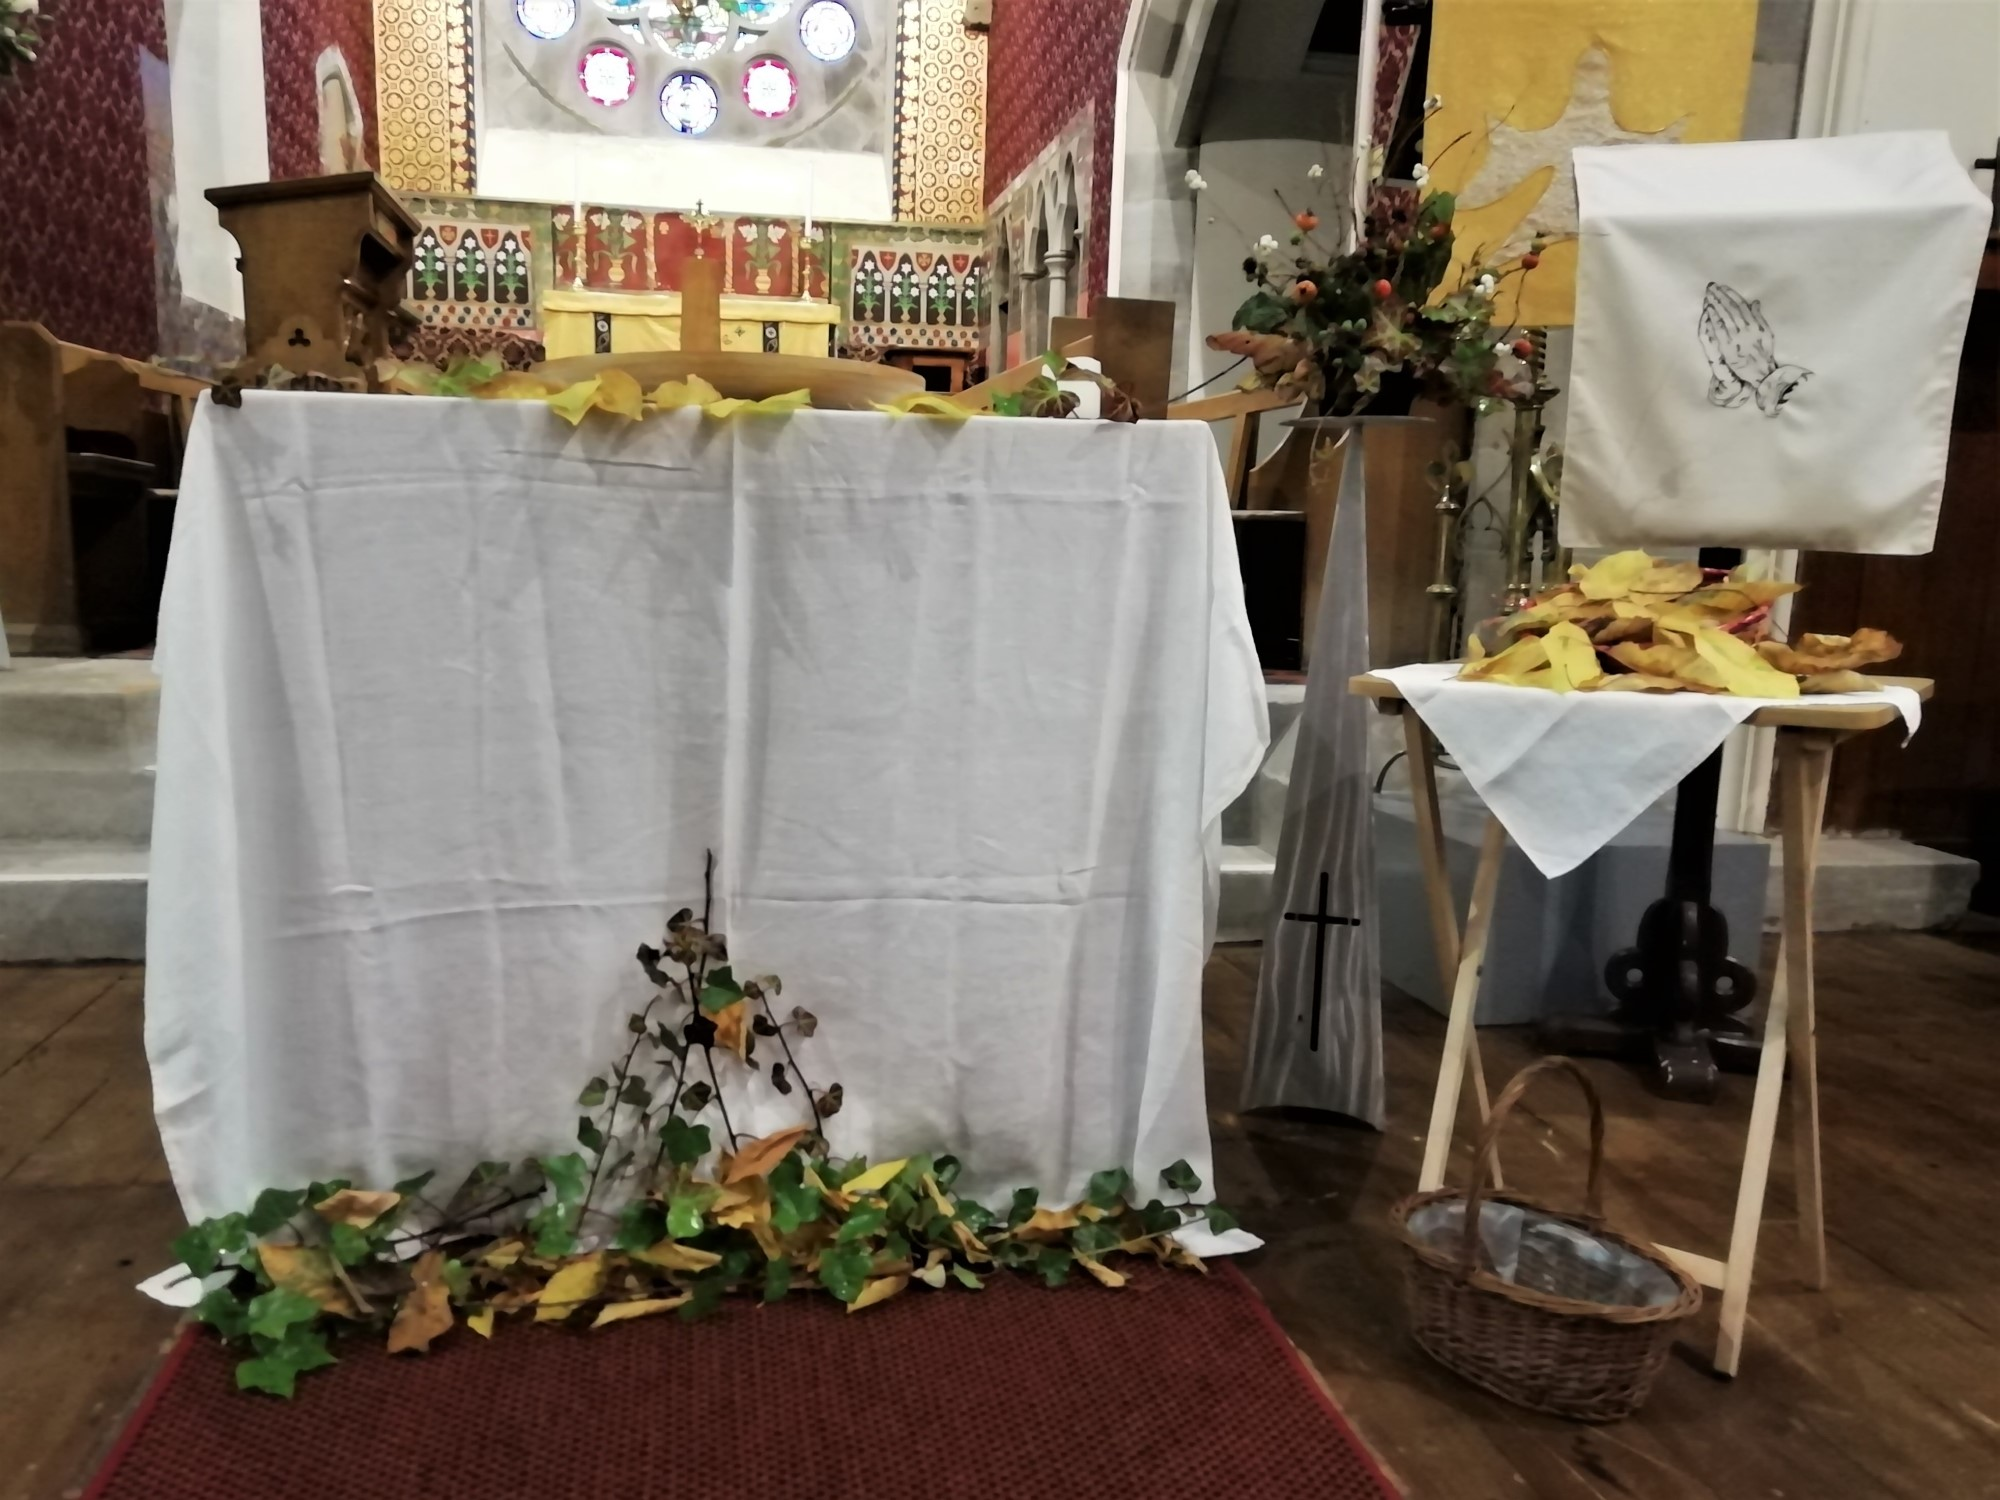 Fallen Leaves All Souls Day Service 2019